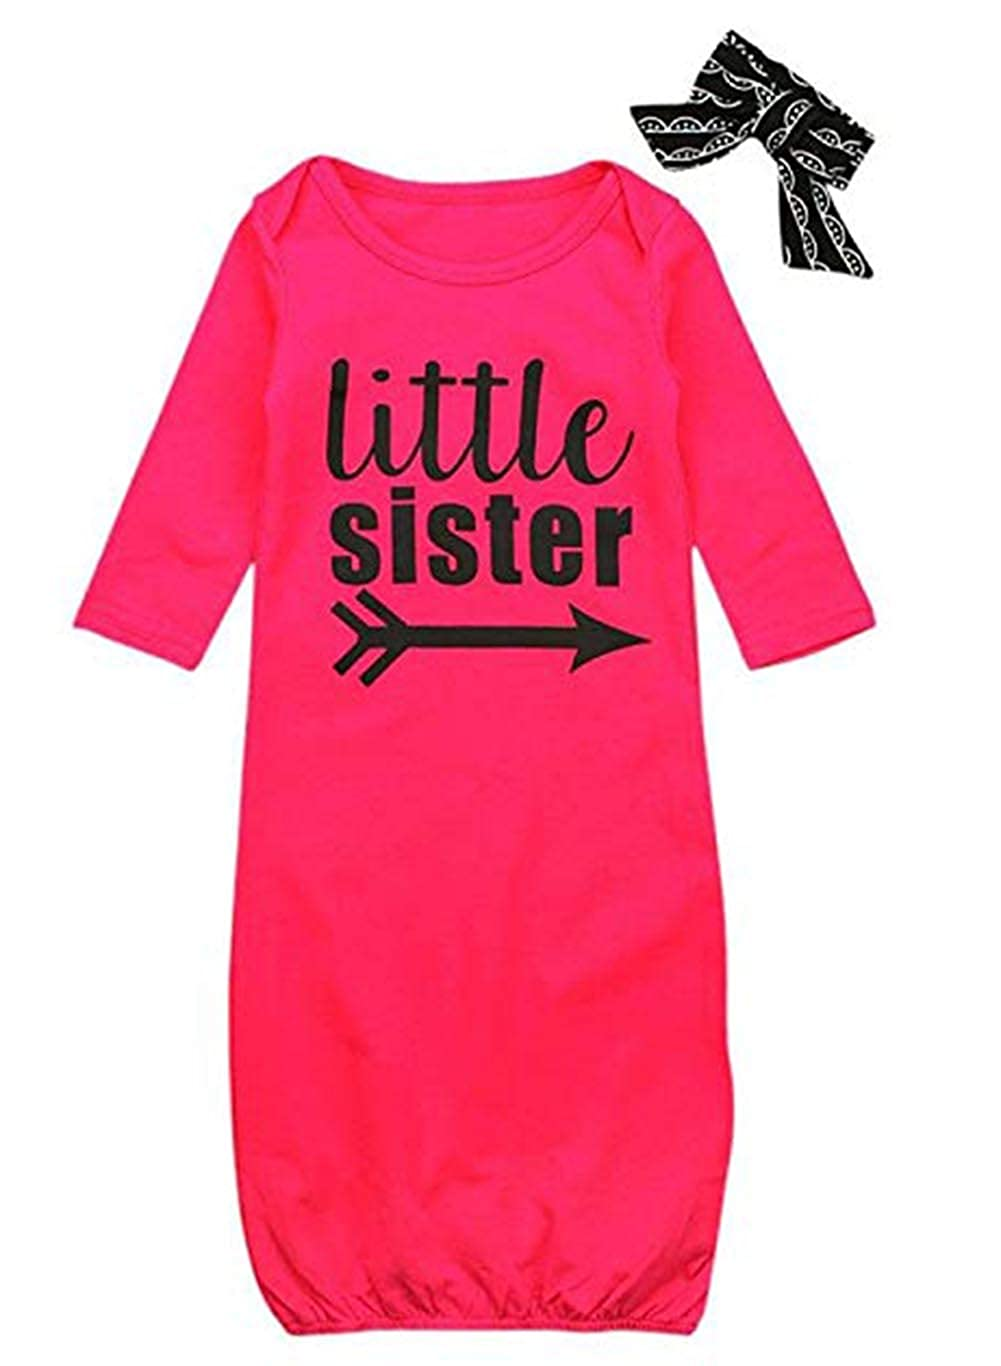 Newborn Baby Girl Litter Sister Sleeping Gown,Swaddle Sack Coming Home Outfit Sleepwear Romper Sleeping Bags Clothes